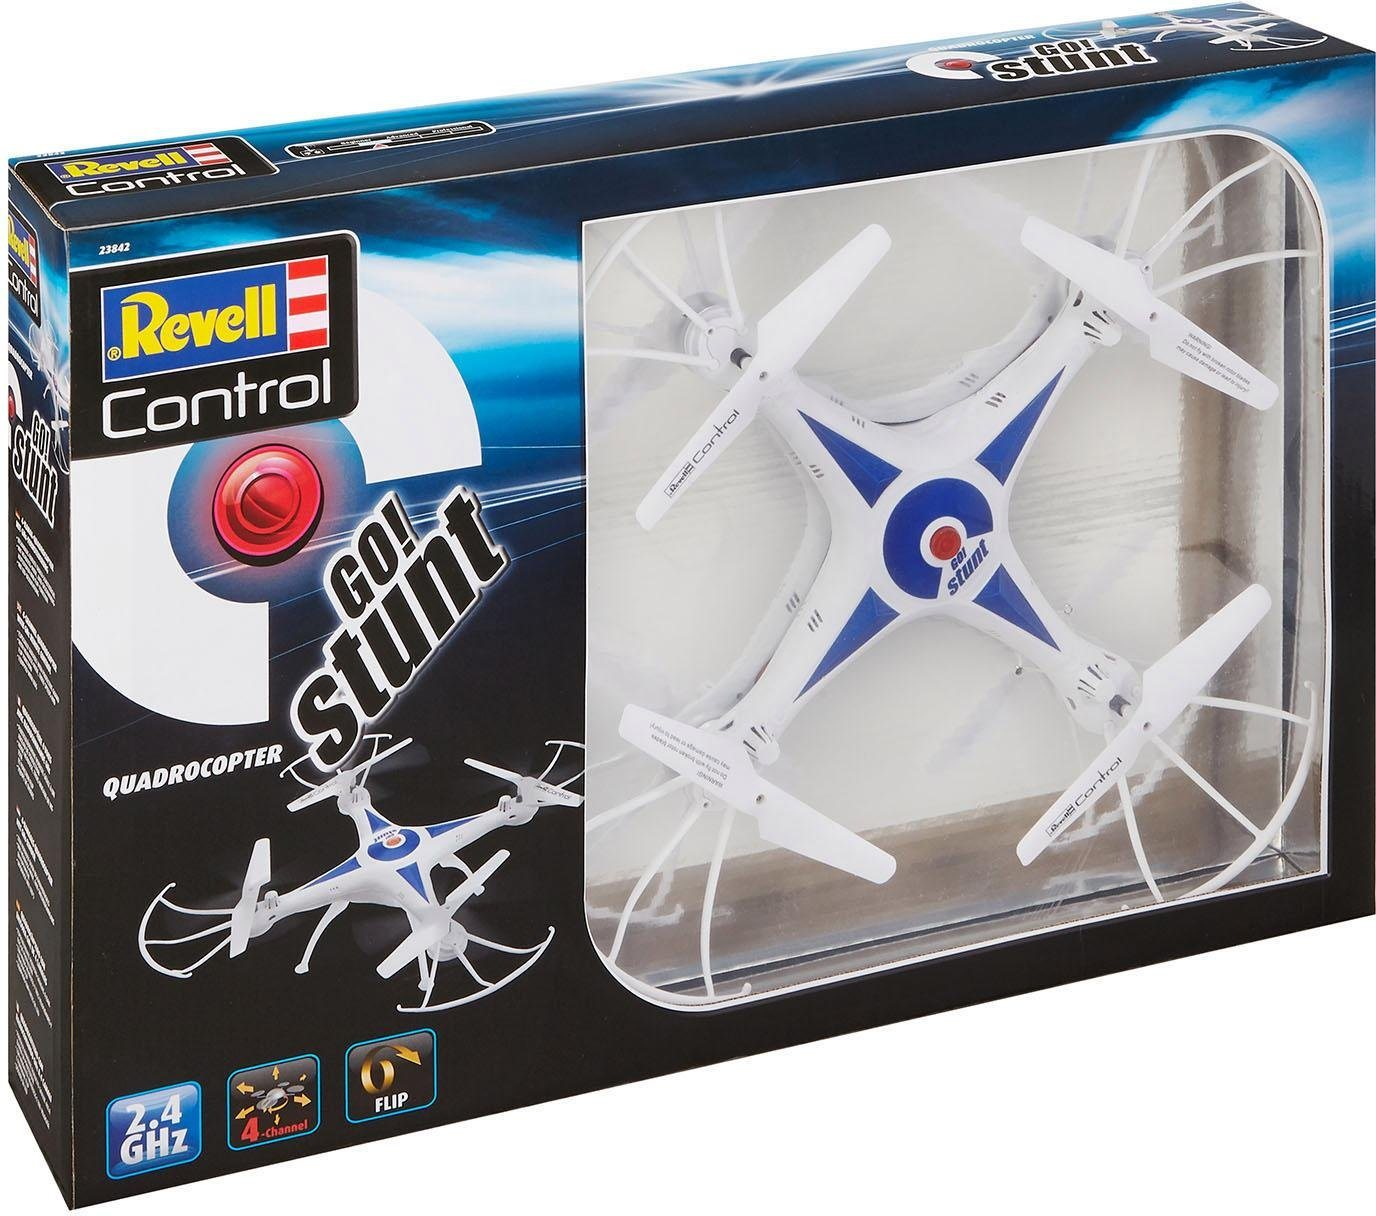 RC Drohne Revell® control GO Stunt*